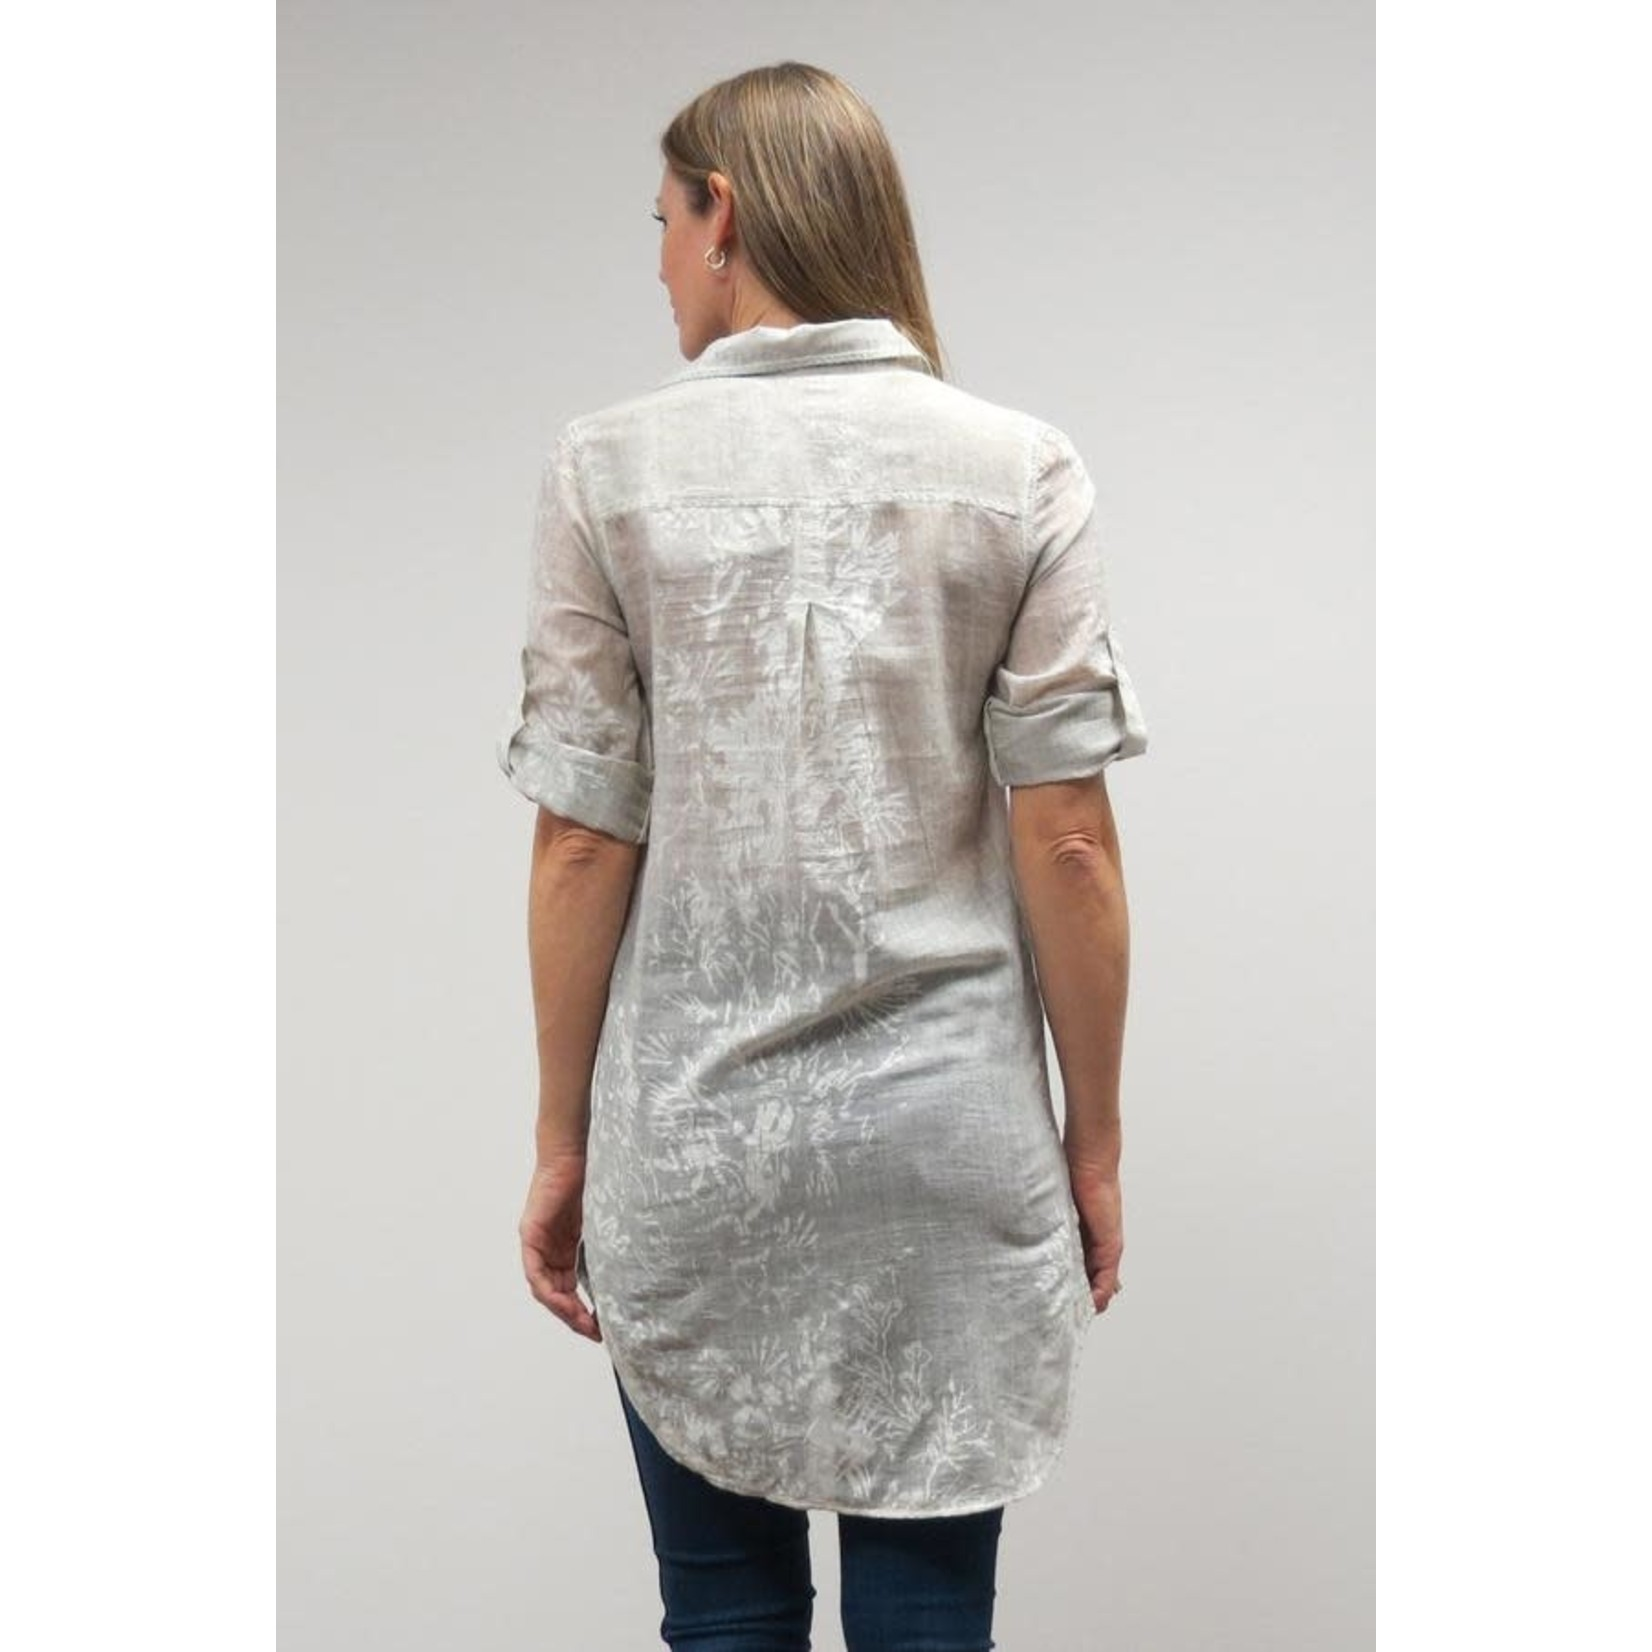 Caite Simone Cement Sheer Button-Up Tunic w/  Stamped Floral Details